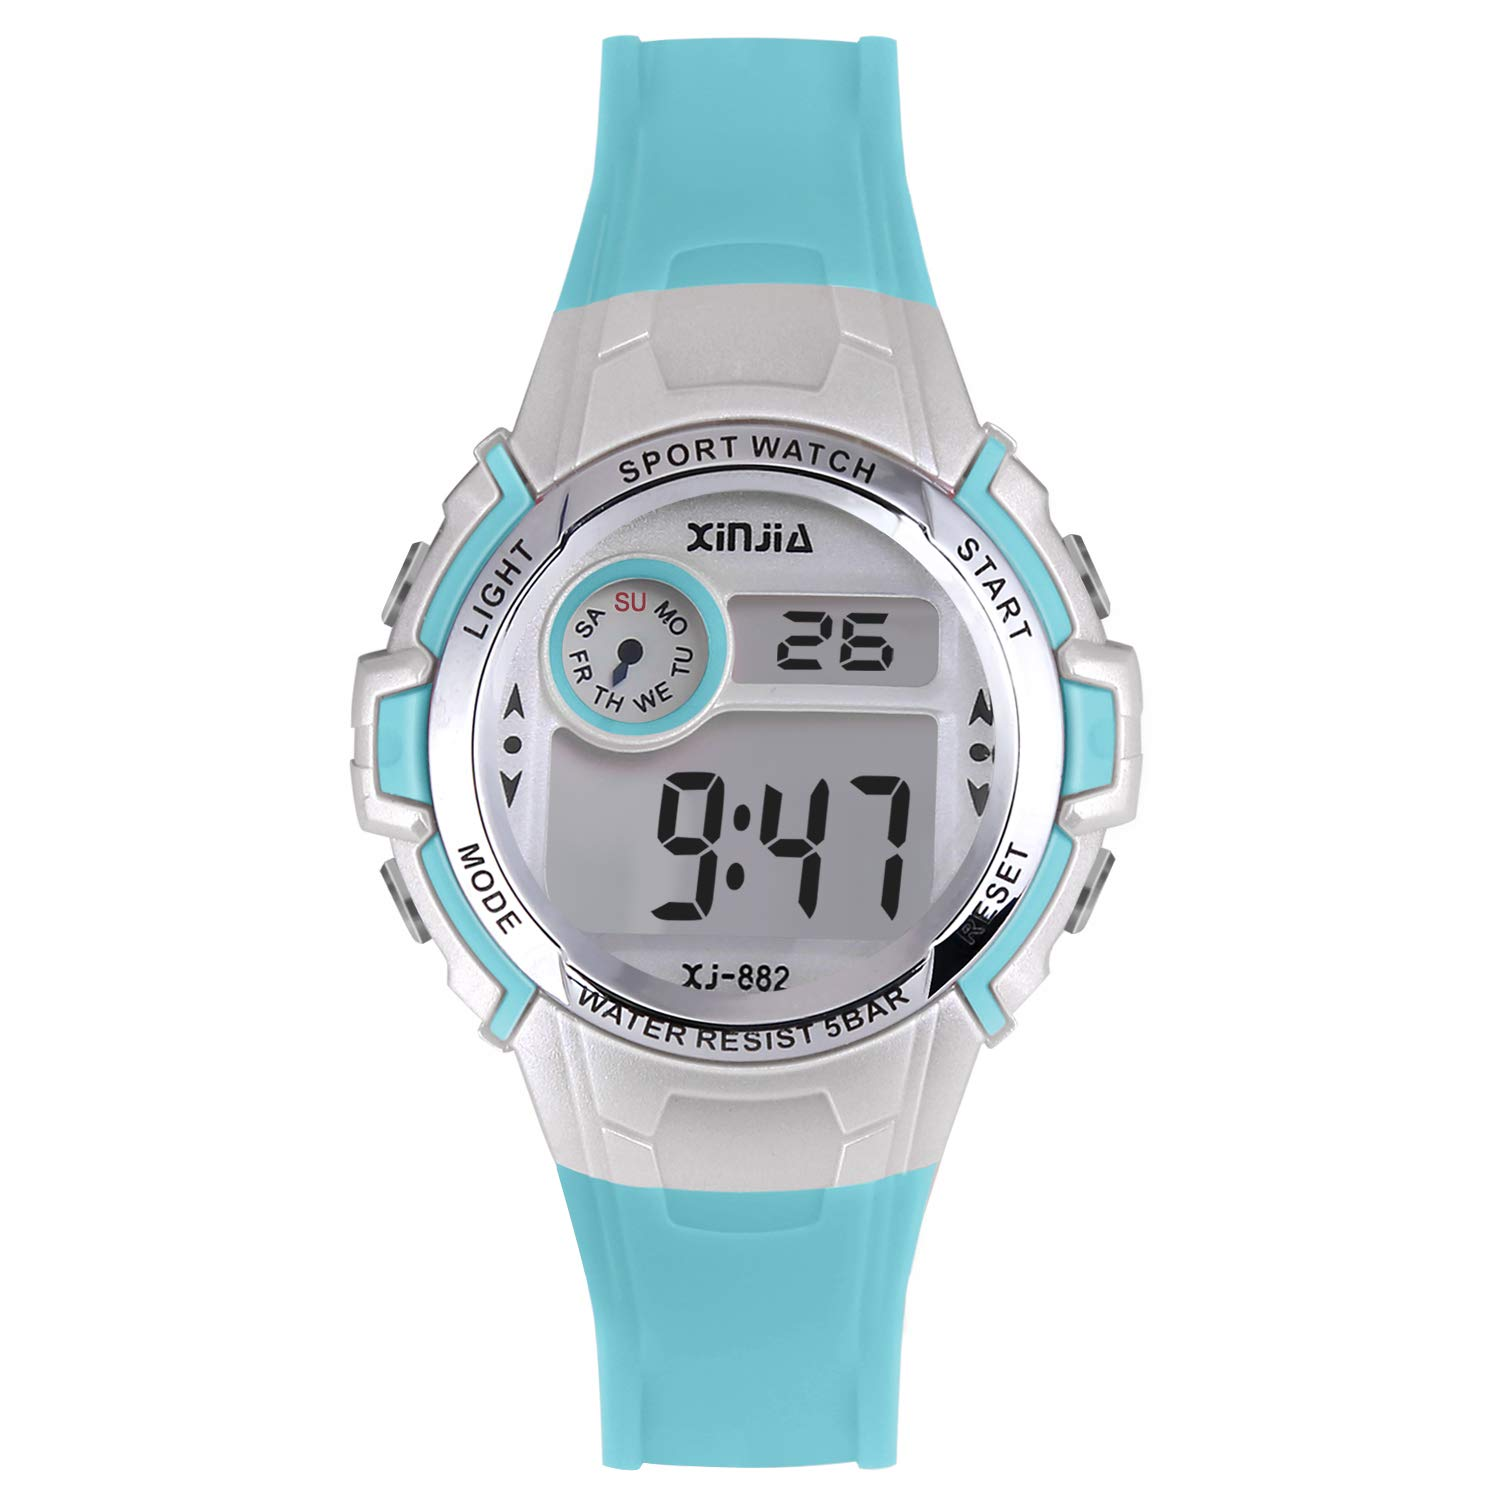 Kids Digital Watch for Boys Girls,Children 50M(5ATM) Waterproof Sports Outdoor LED Multi Functional Wrist Watches with Alarm for Children (Blue) by XINYIXING